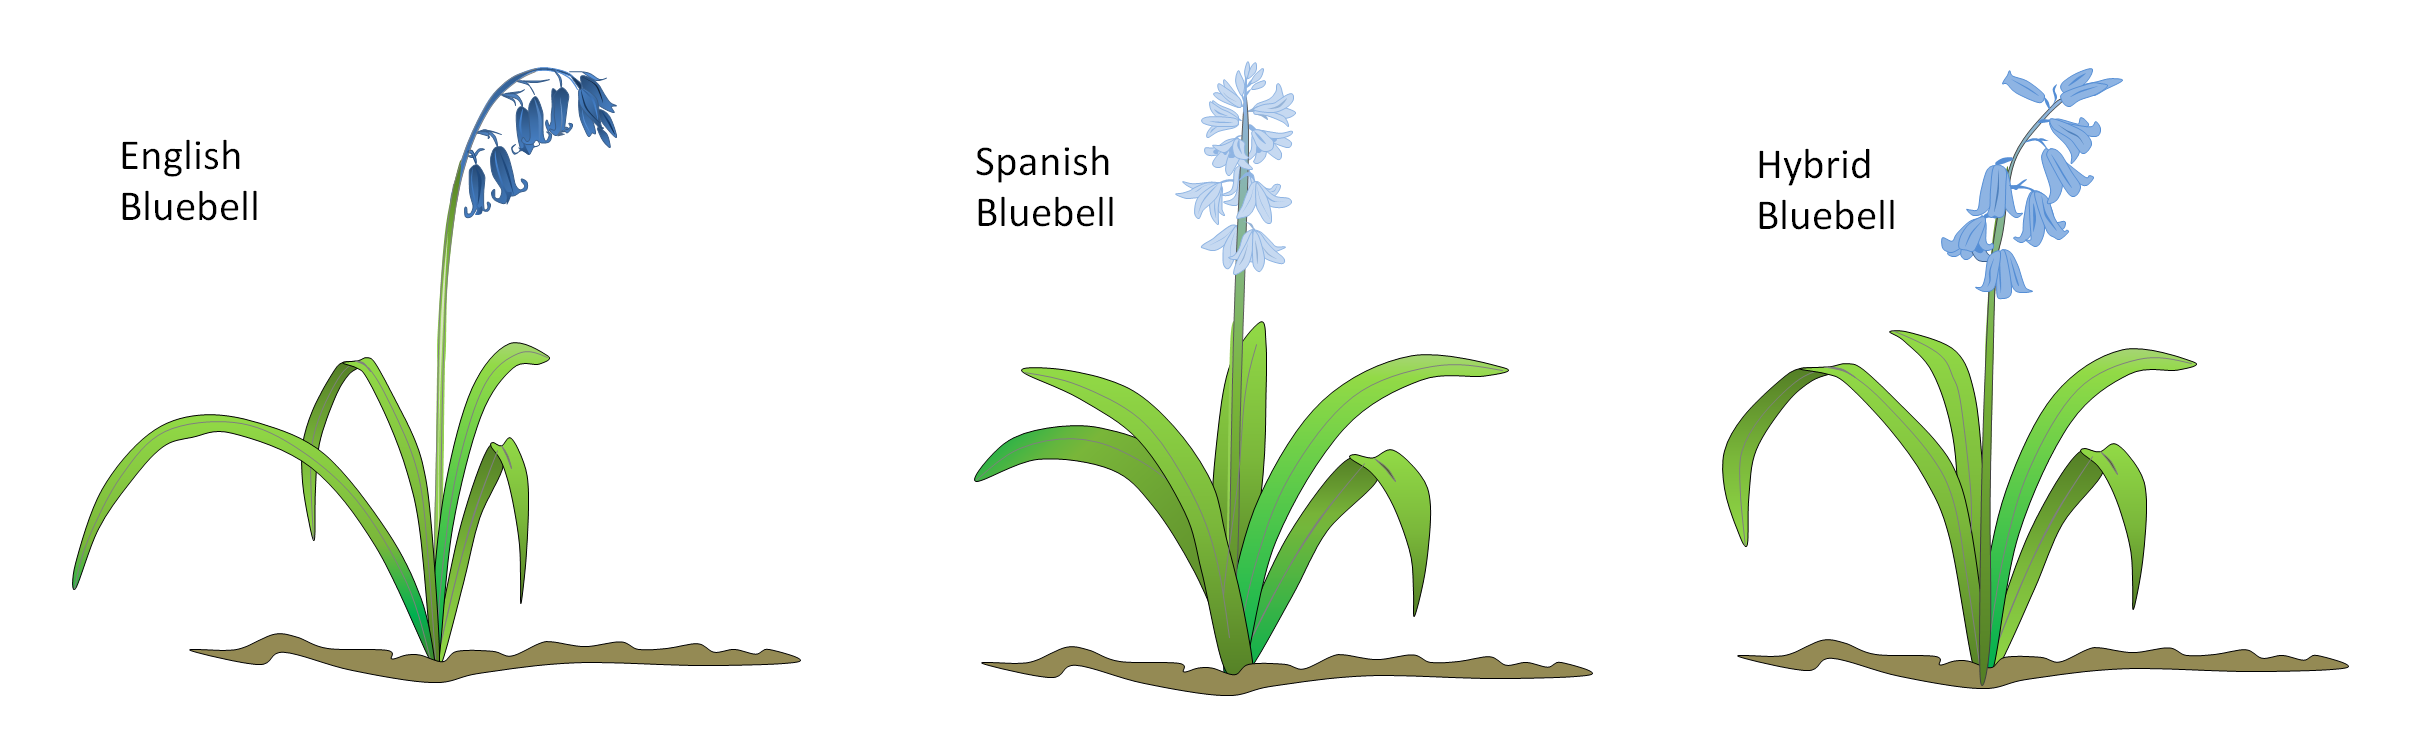 Bluebell Types